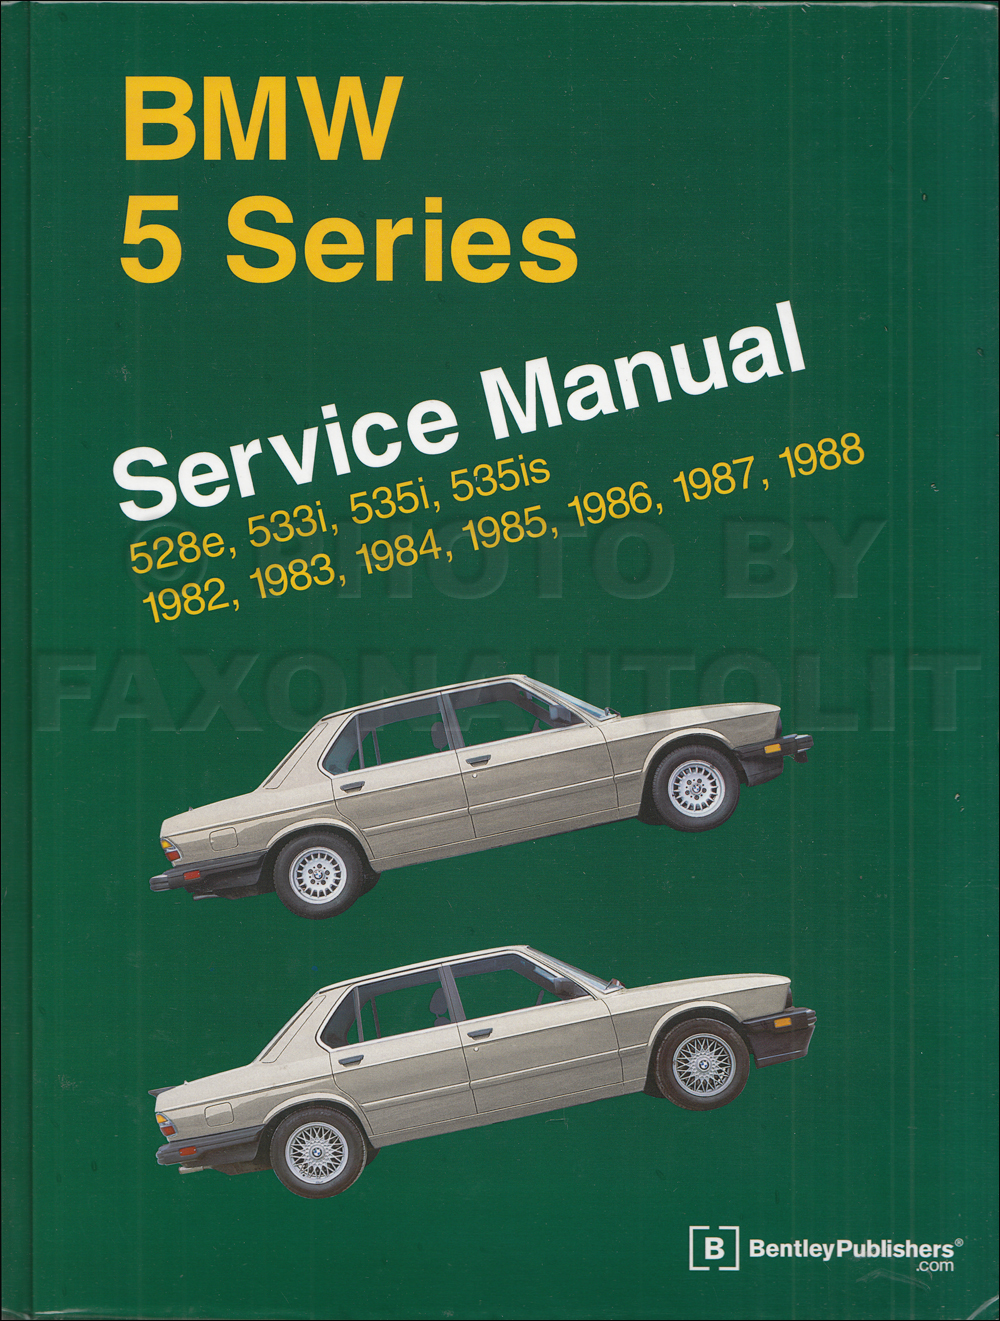 1982-1988 BMW 528e 533i 535i 535is Bentley Repair Manual